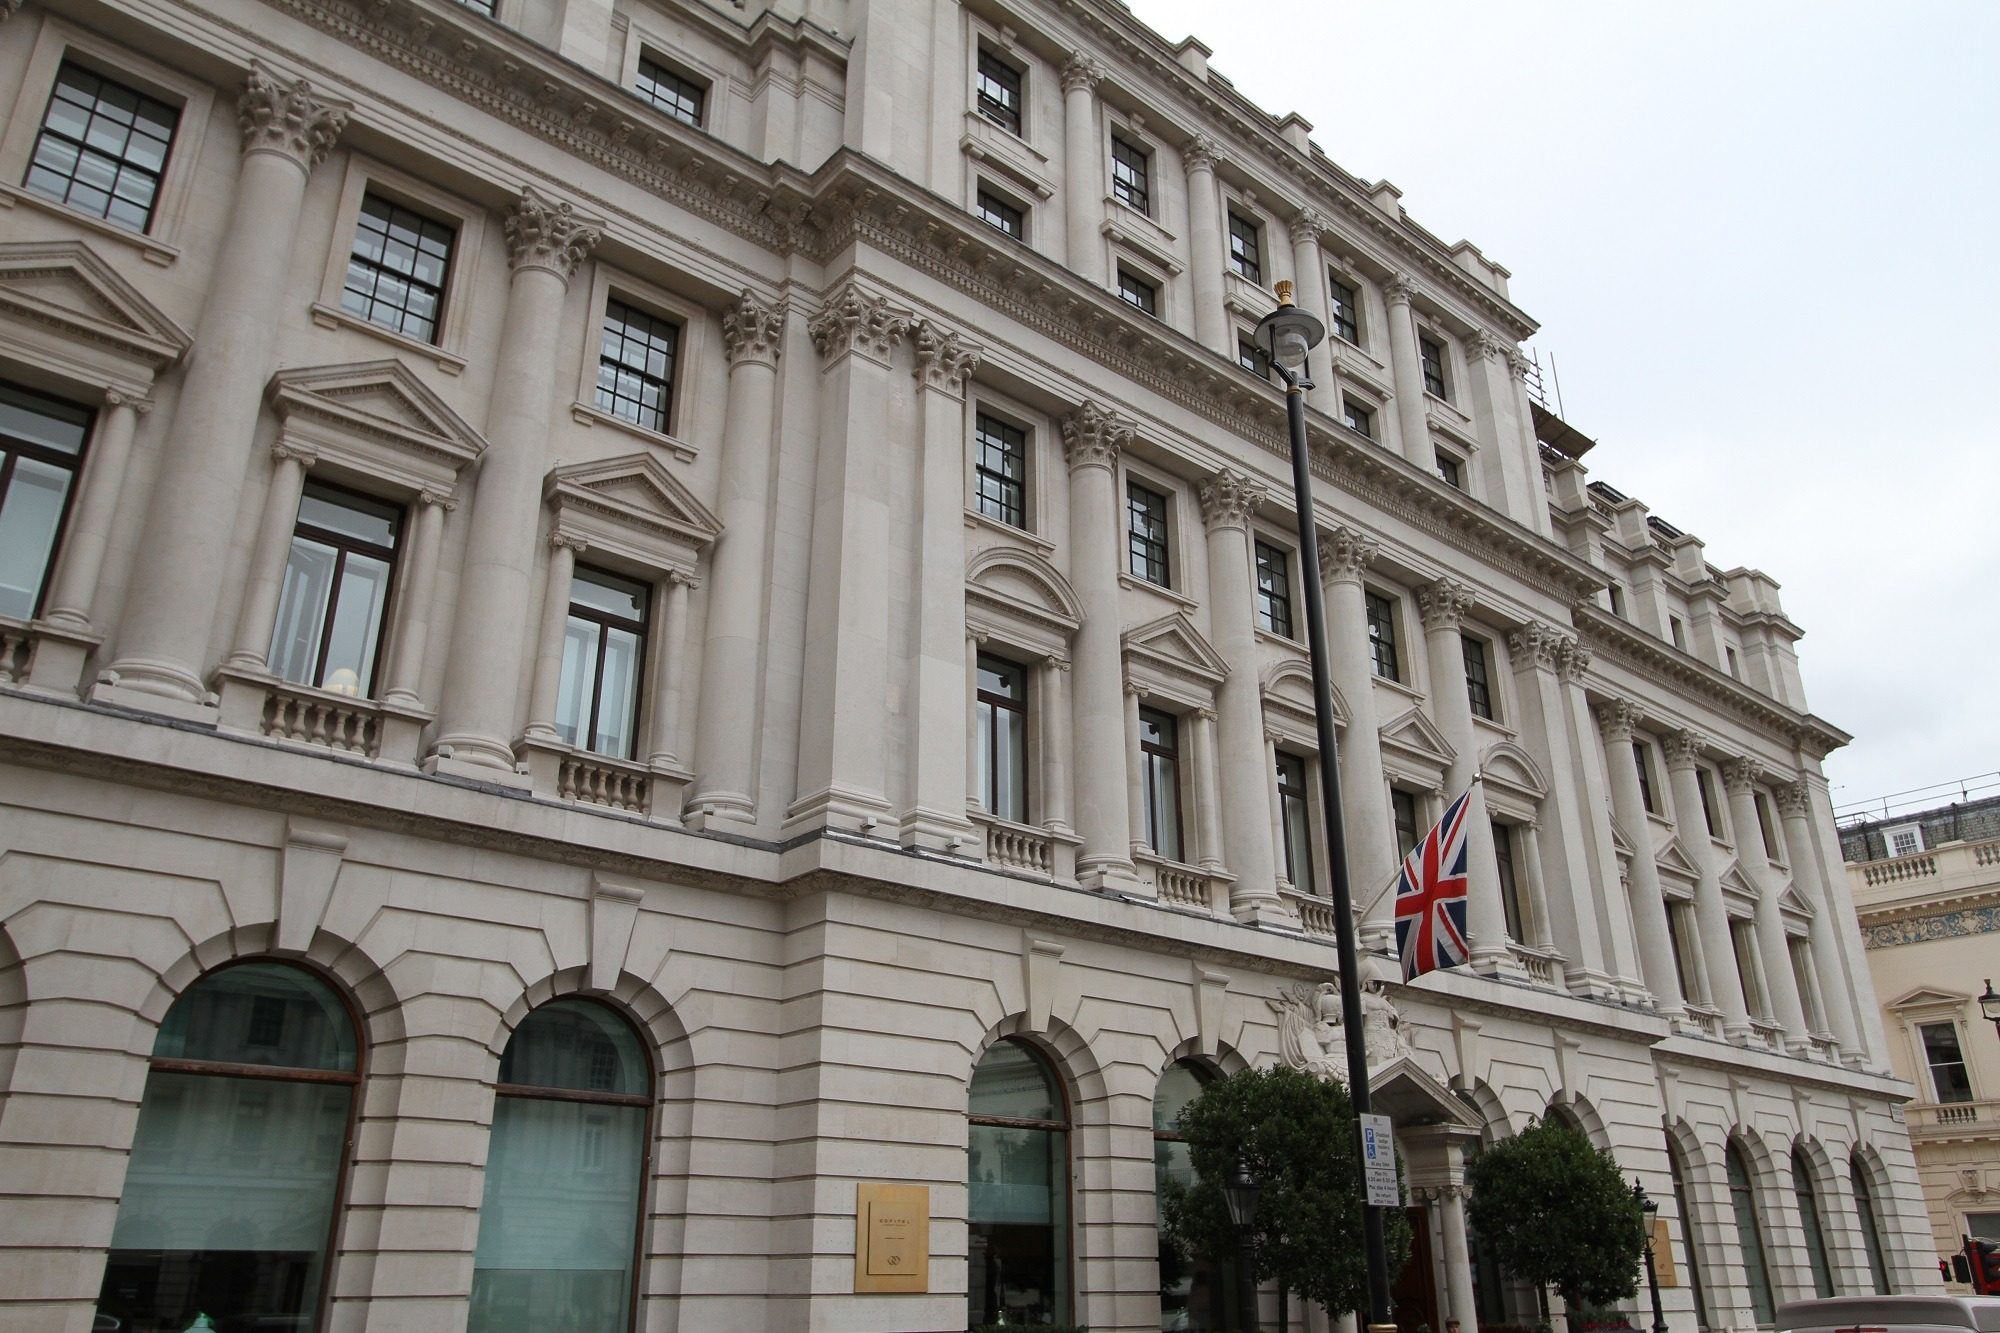 Sofitel-St James's facade cleaning